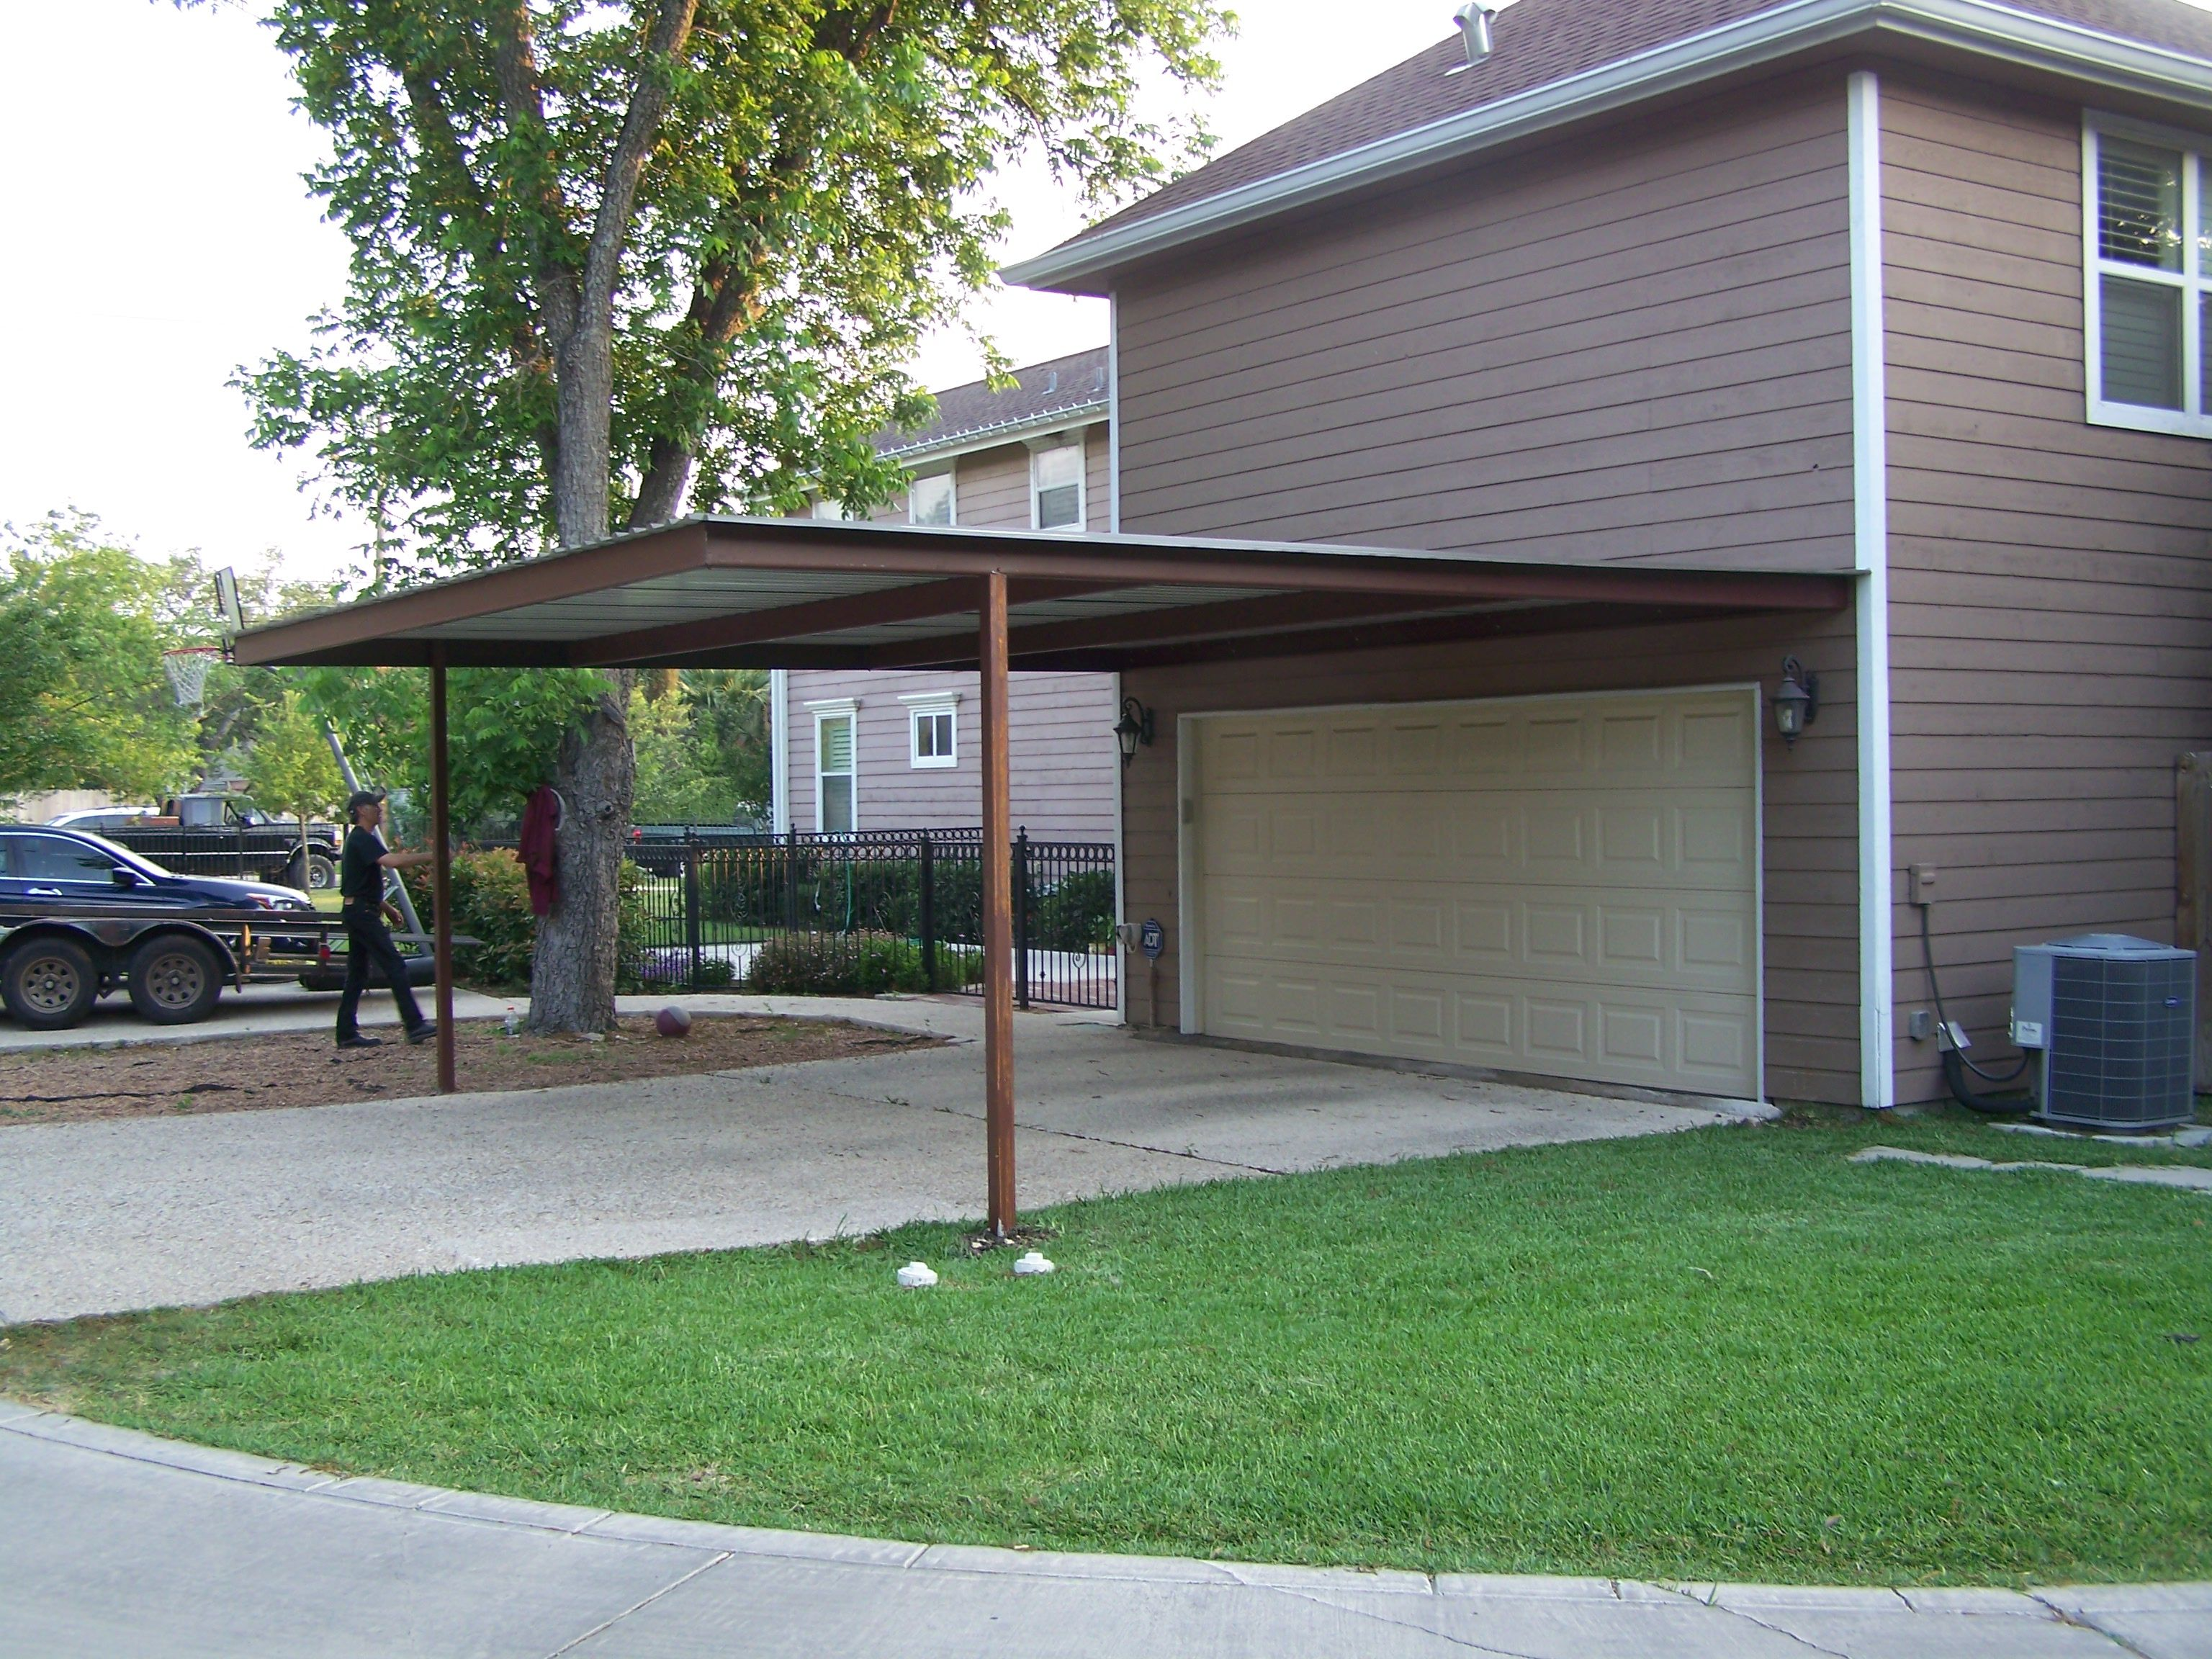 Best photos, images, and pictures gallery about carport